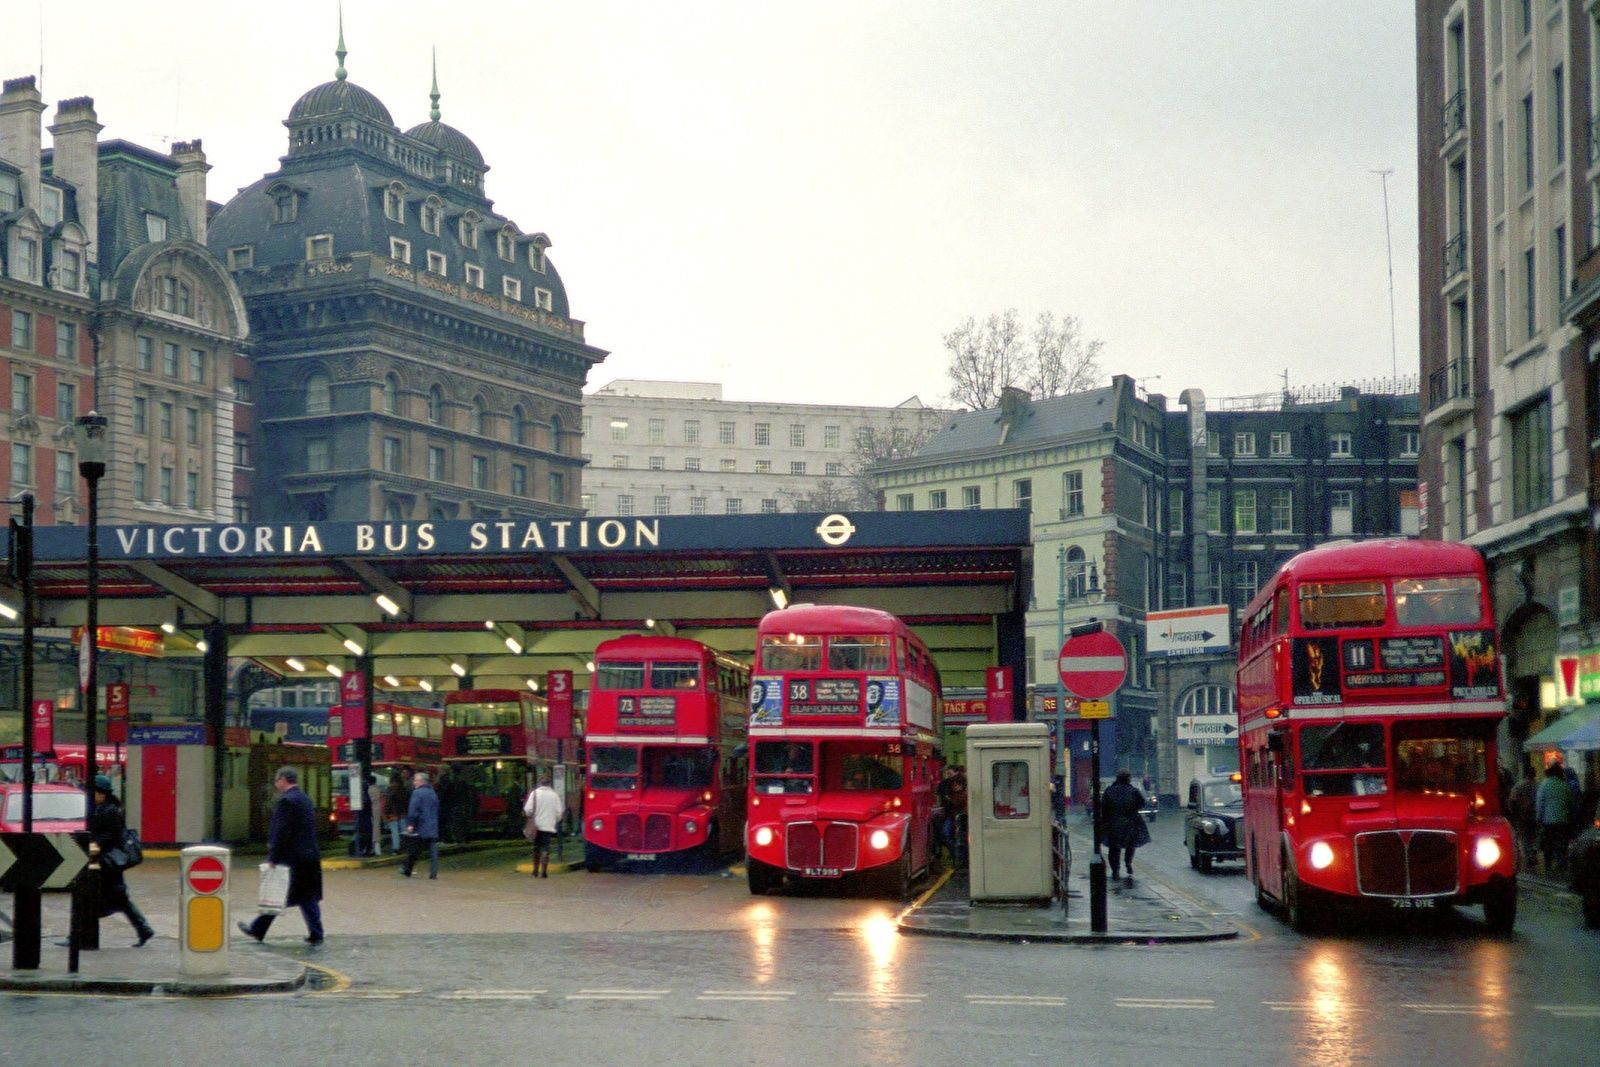 Pin By Claudia Rodler On London Victoria Station London Victoria London Victoria City